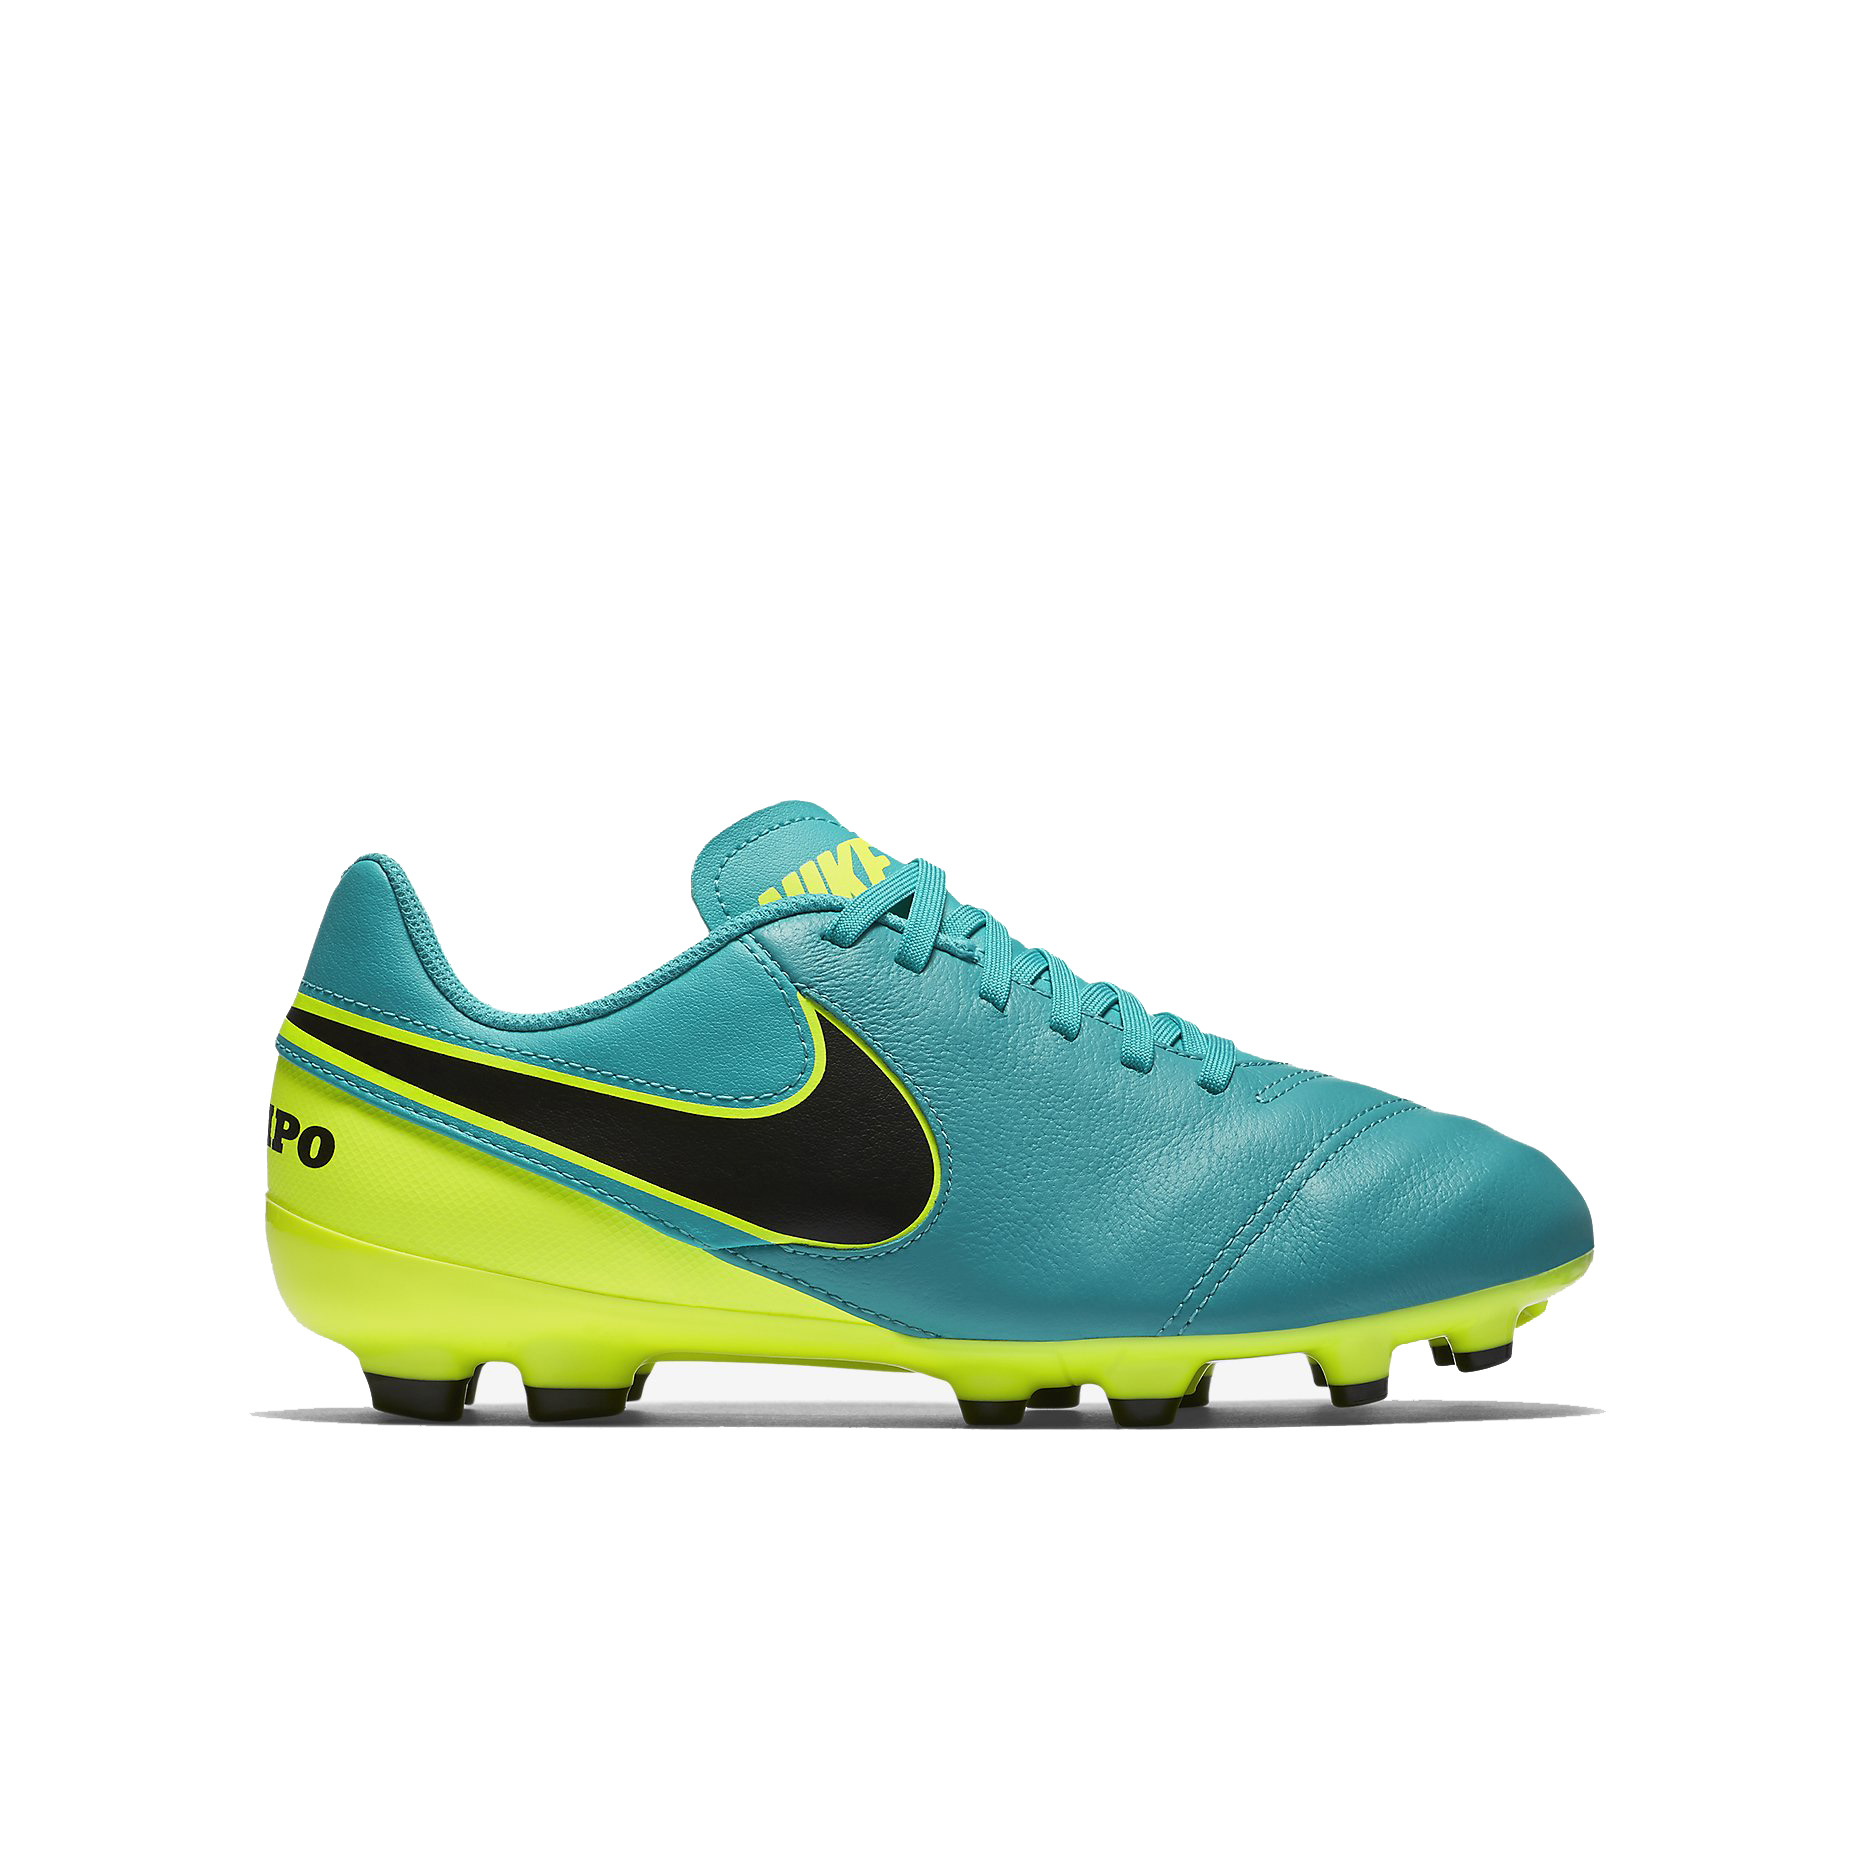 6a01452ba Acquista 2 OFF QUALSIASI nike tiempo legend it CASE E OTTIENI IL 70 ...